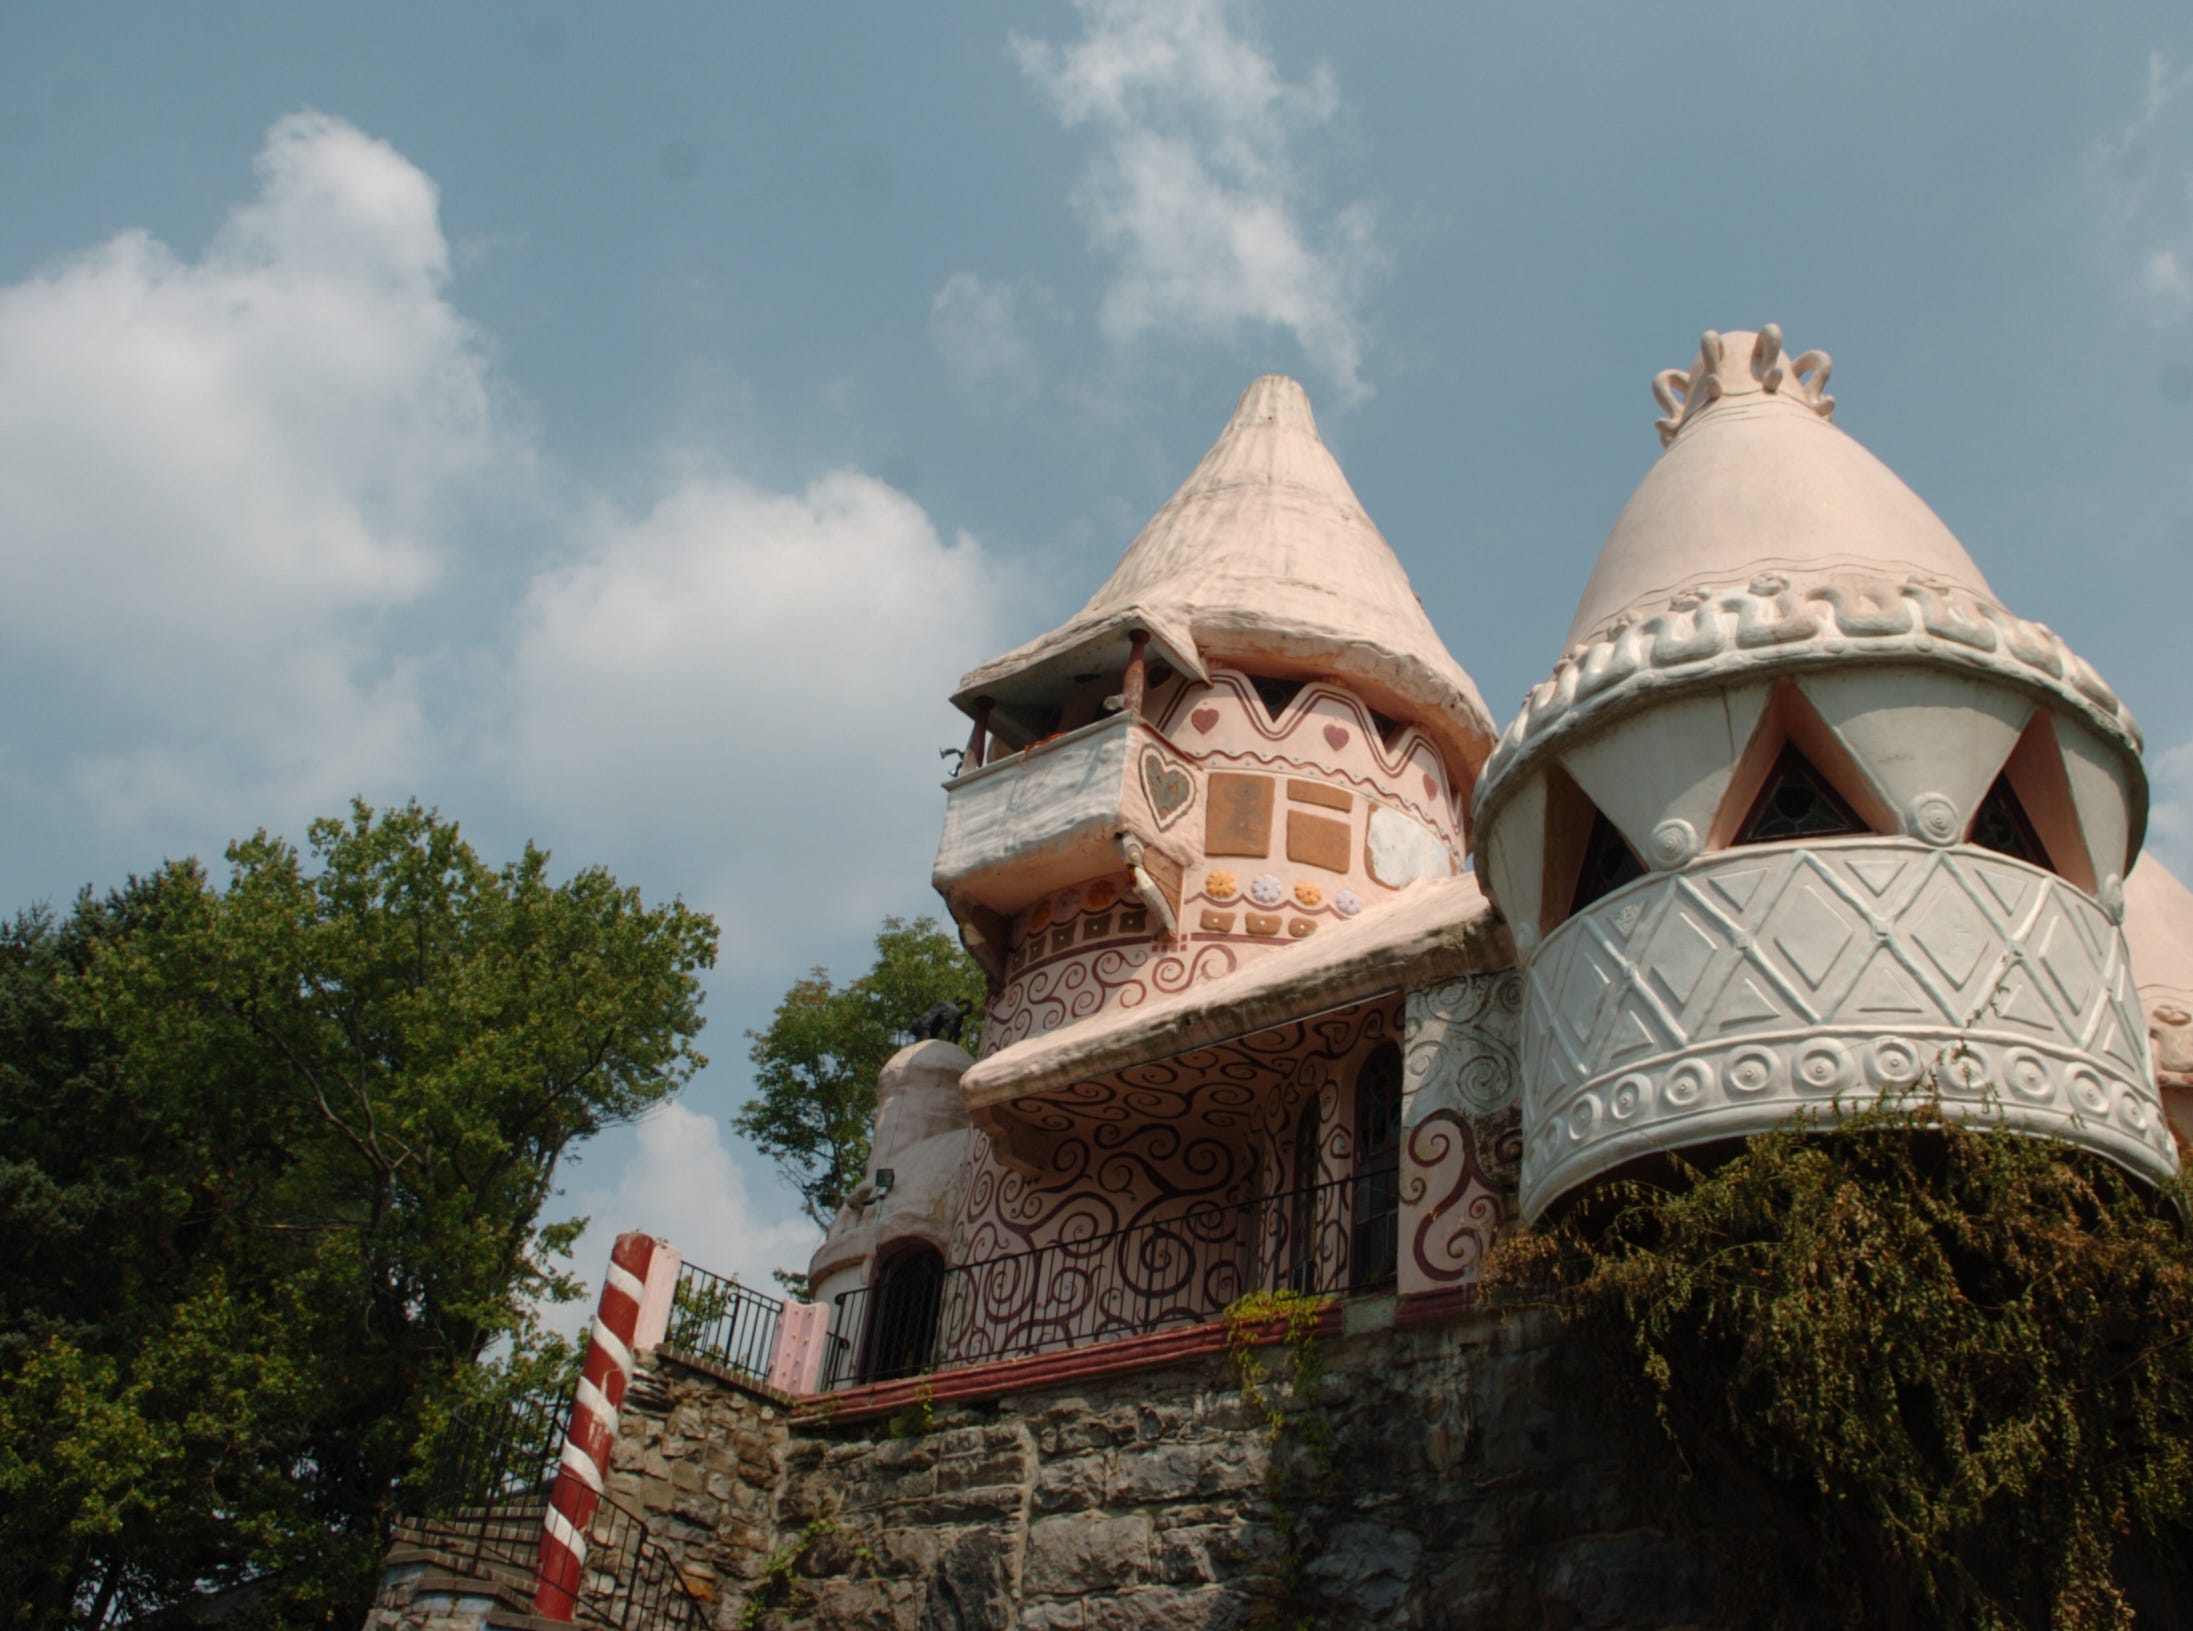 2007: The historic Gingerbread Castle in Hamburg is in desperate need of renovation.